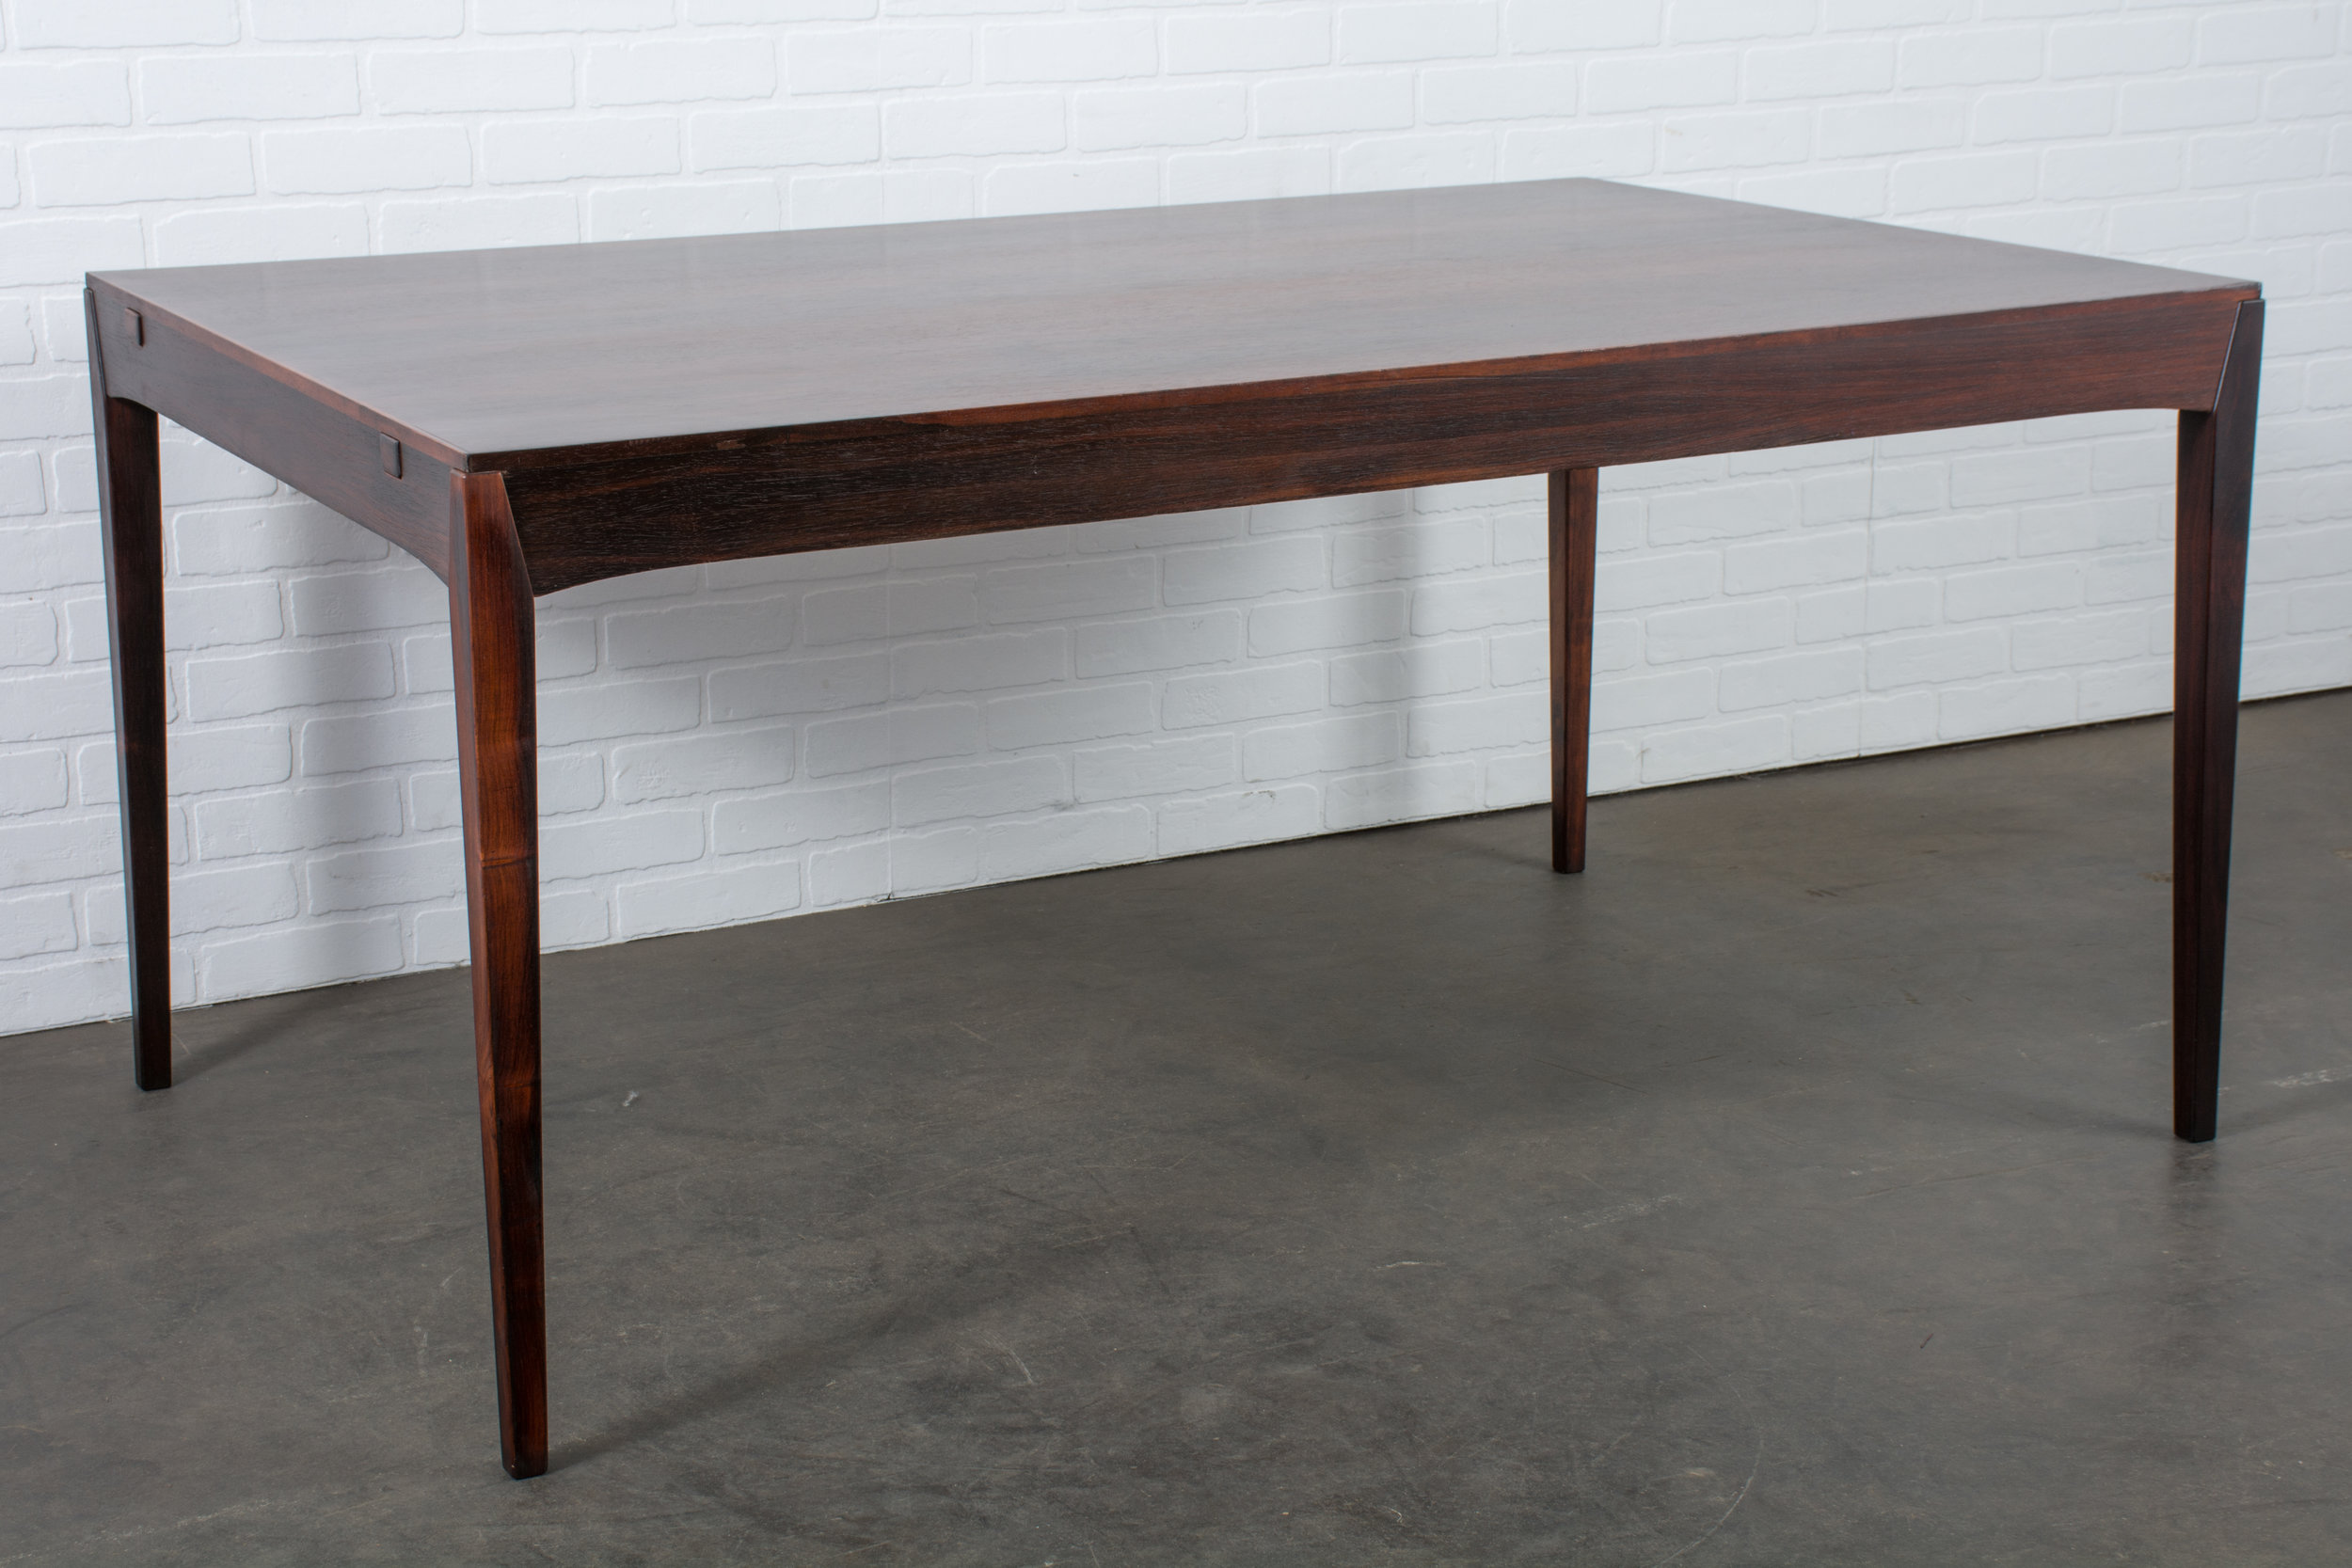 Danish Modern Rosewood Dining Table with Leaves by Hornslet Mobelfabrik